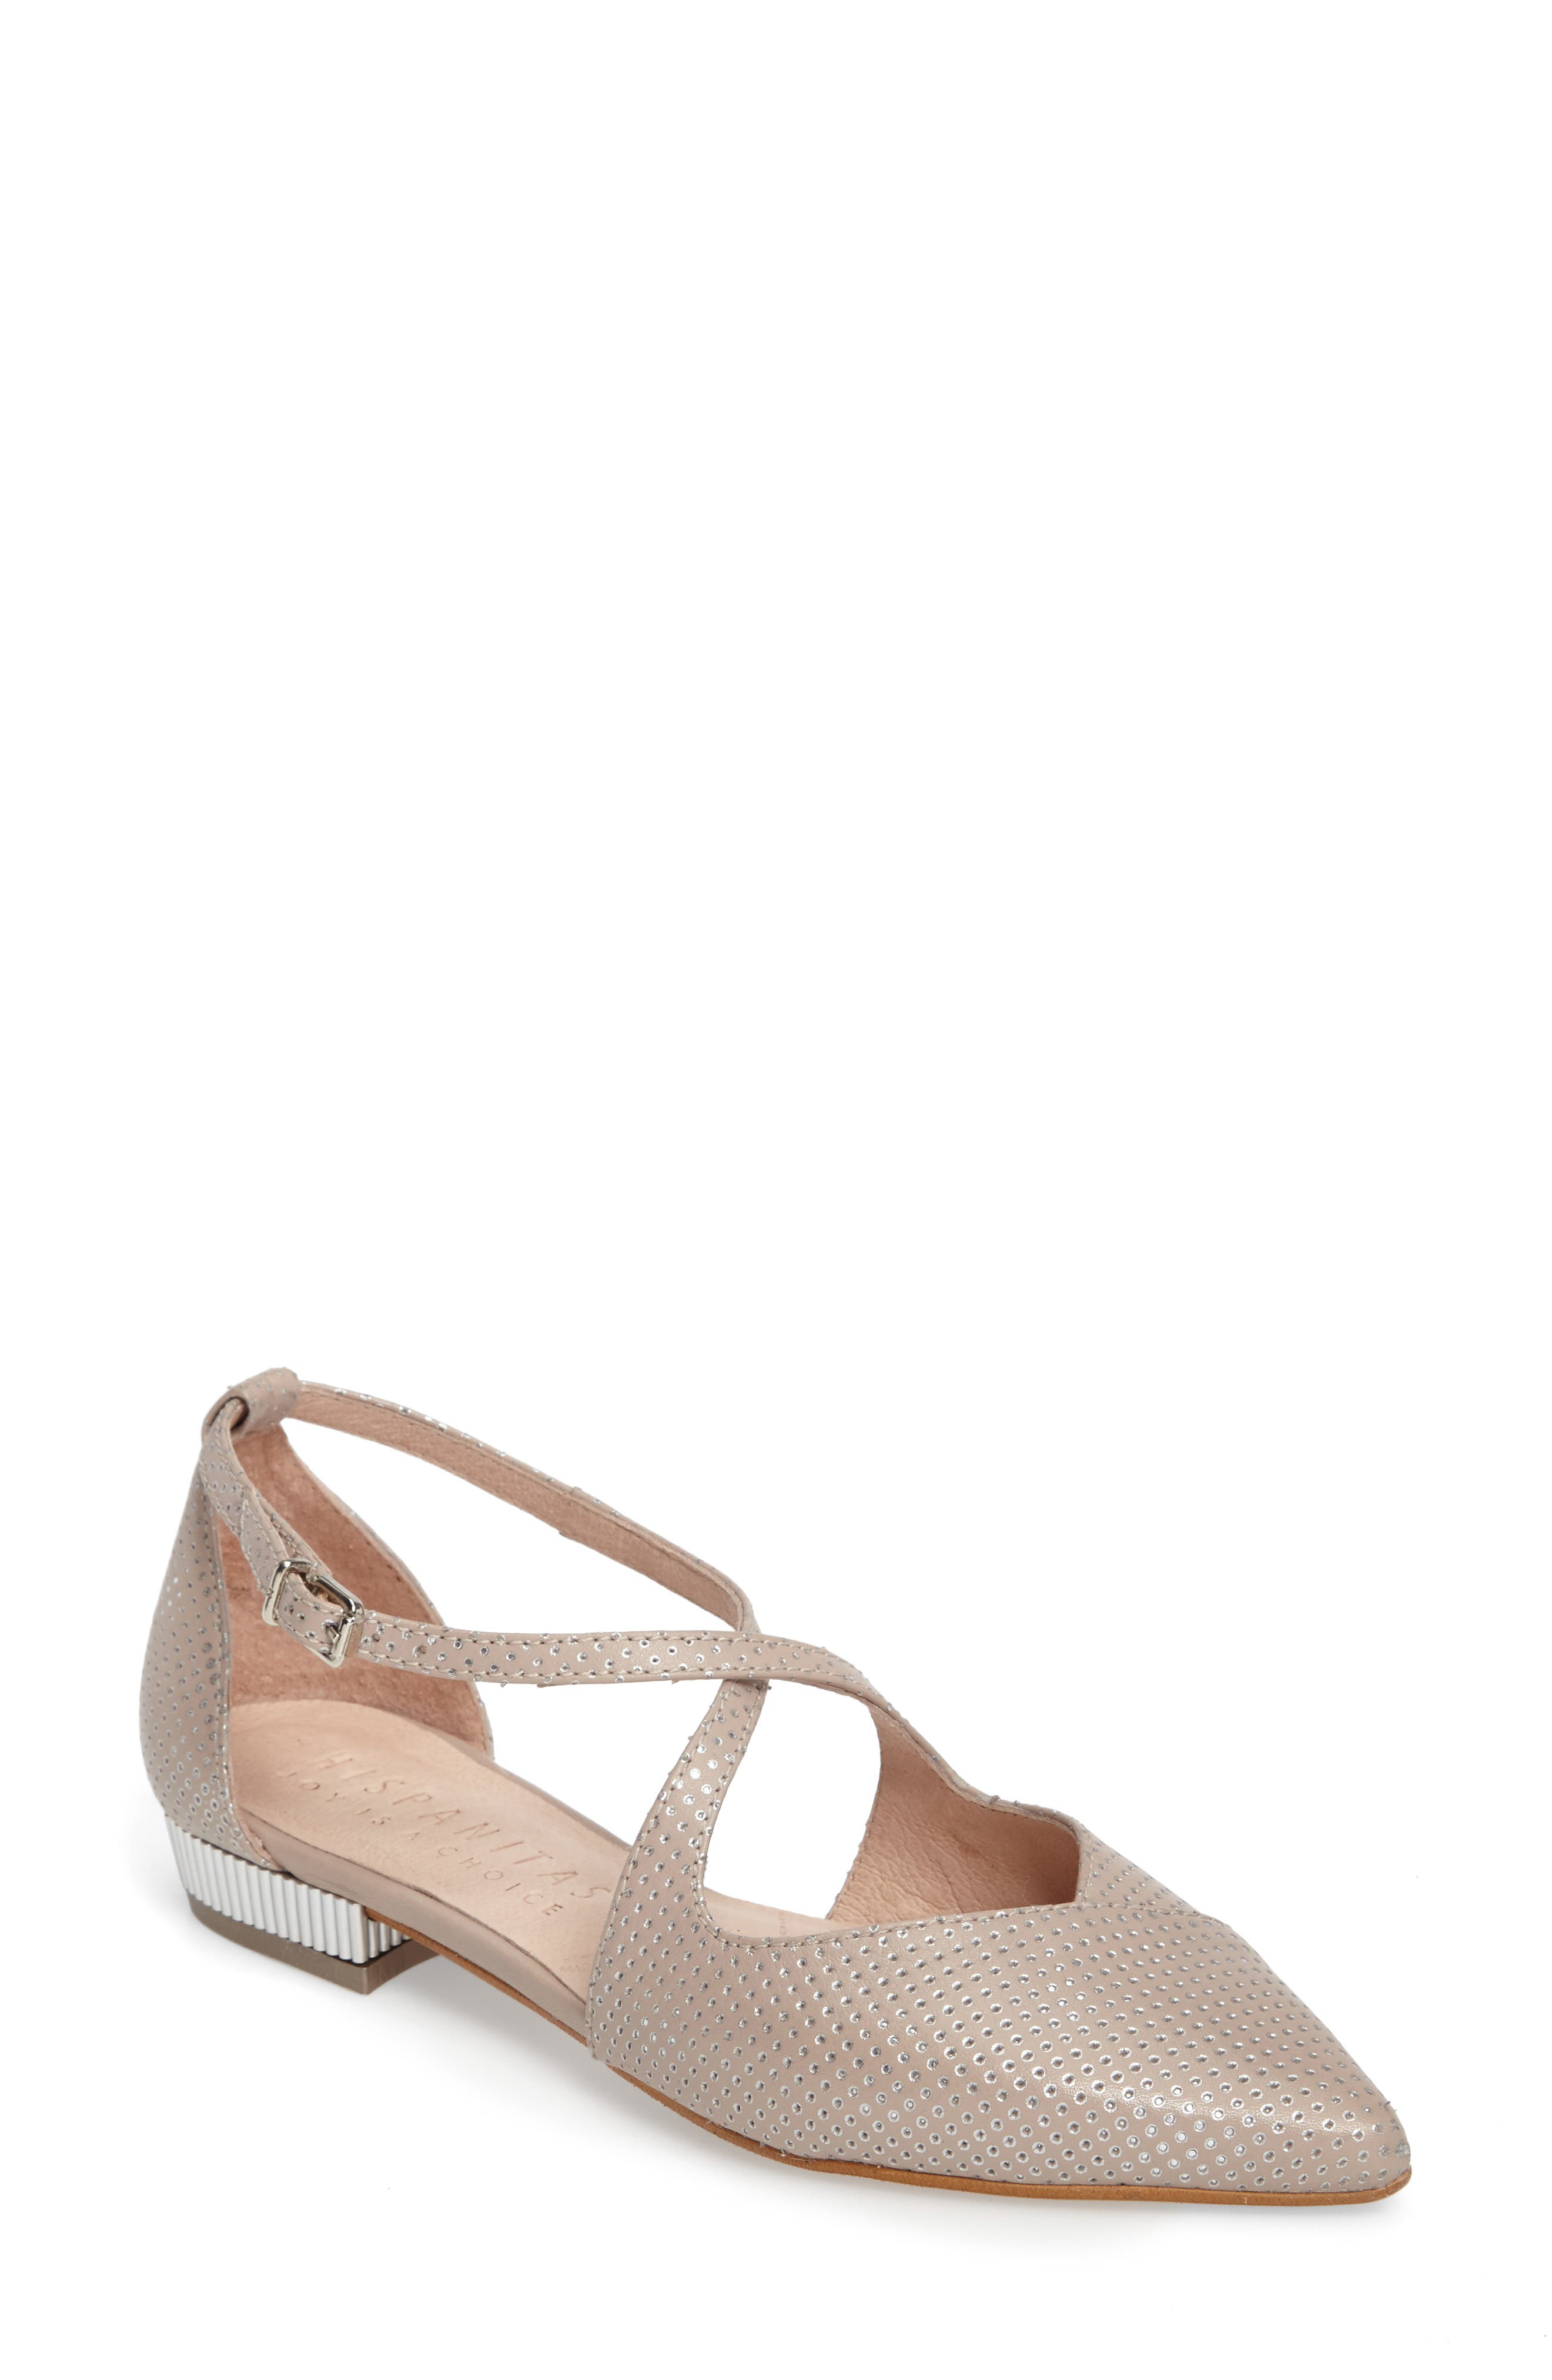 April Perforated Pointy Toe Flat,                         Main,                         color, 250